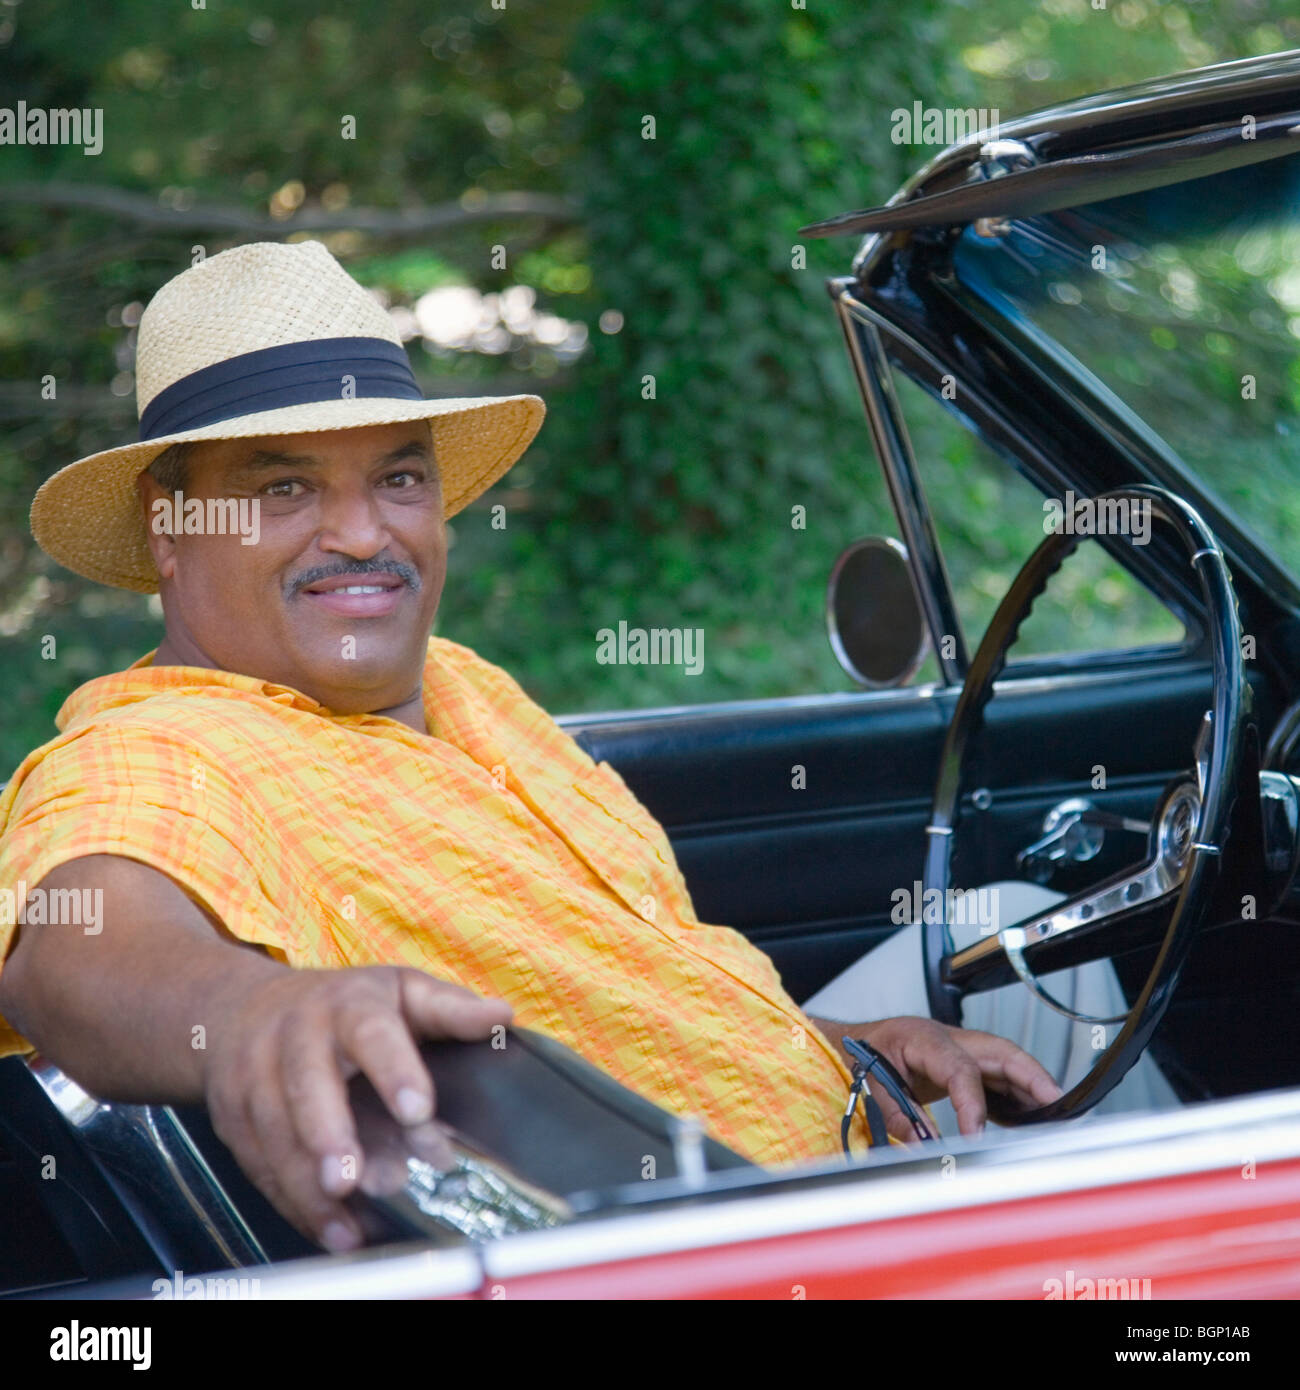 Portrait of a senior man sitting in a convertible car and smiling - Stock Image